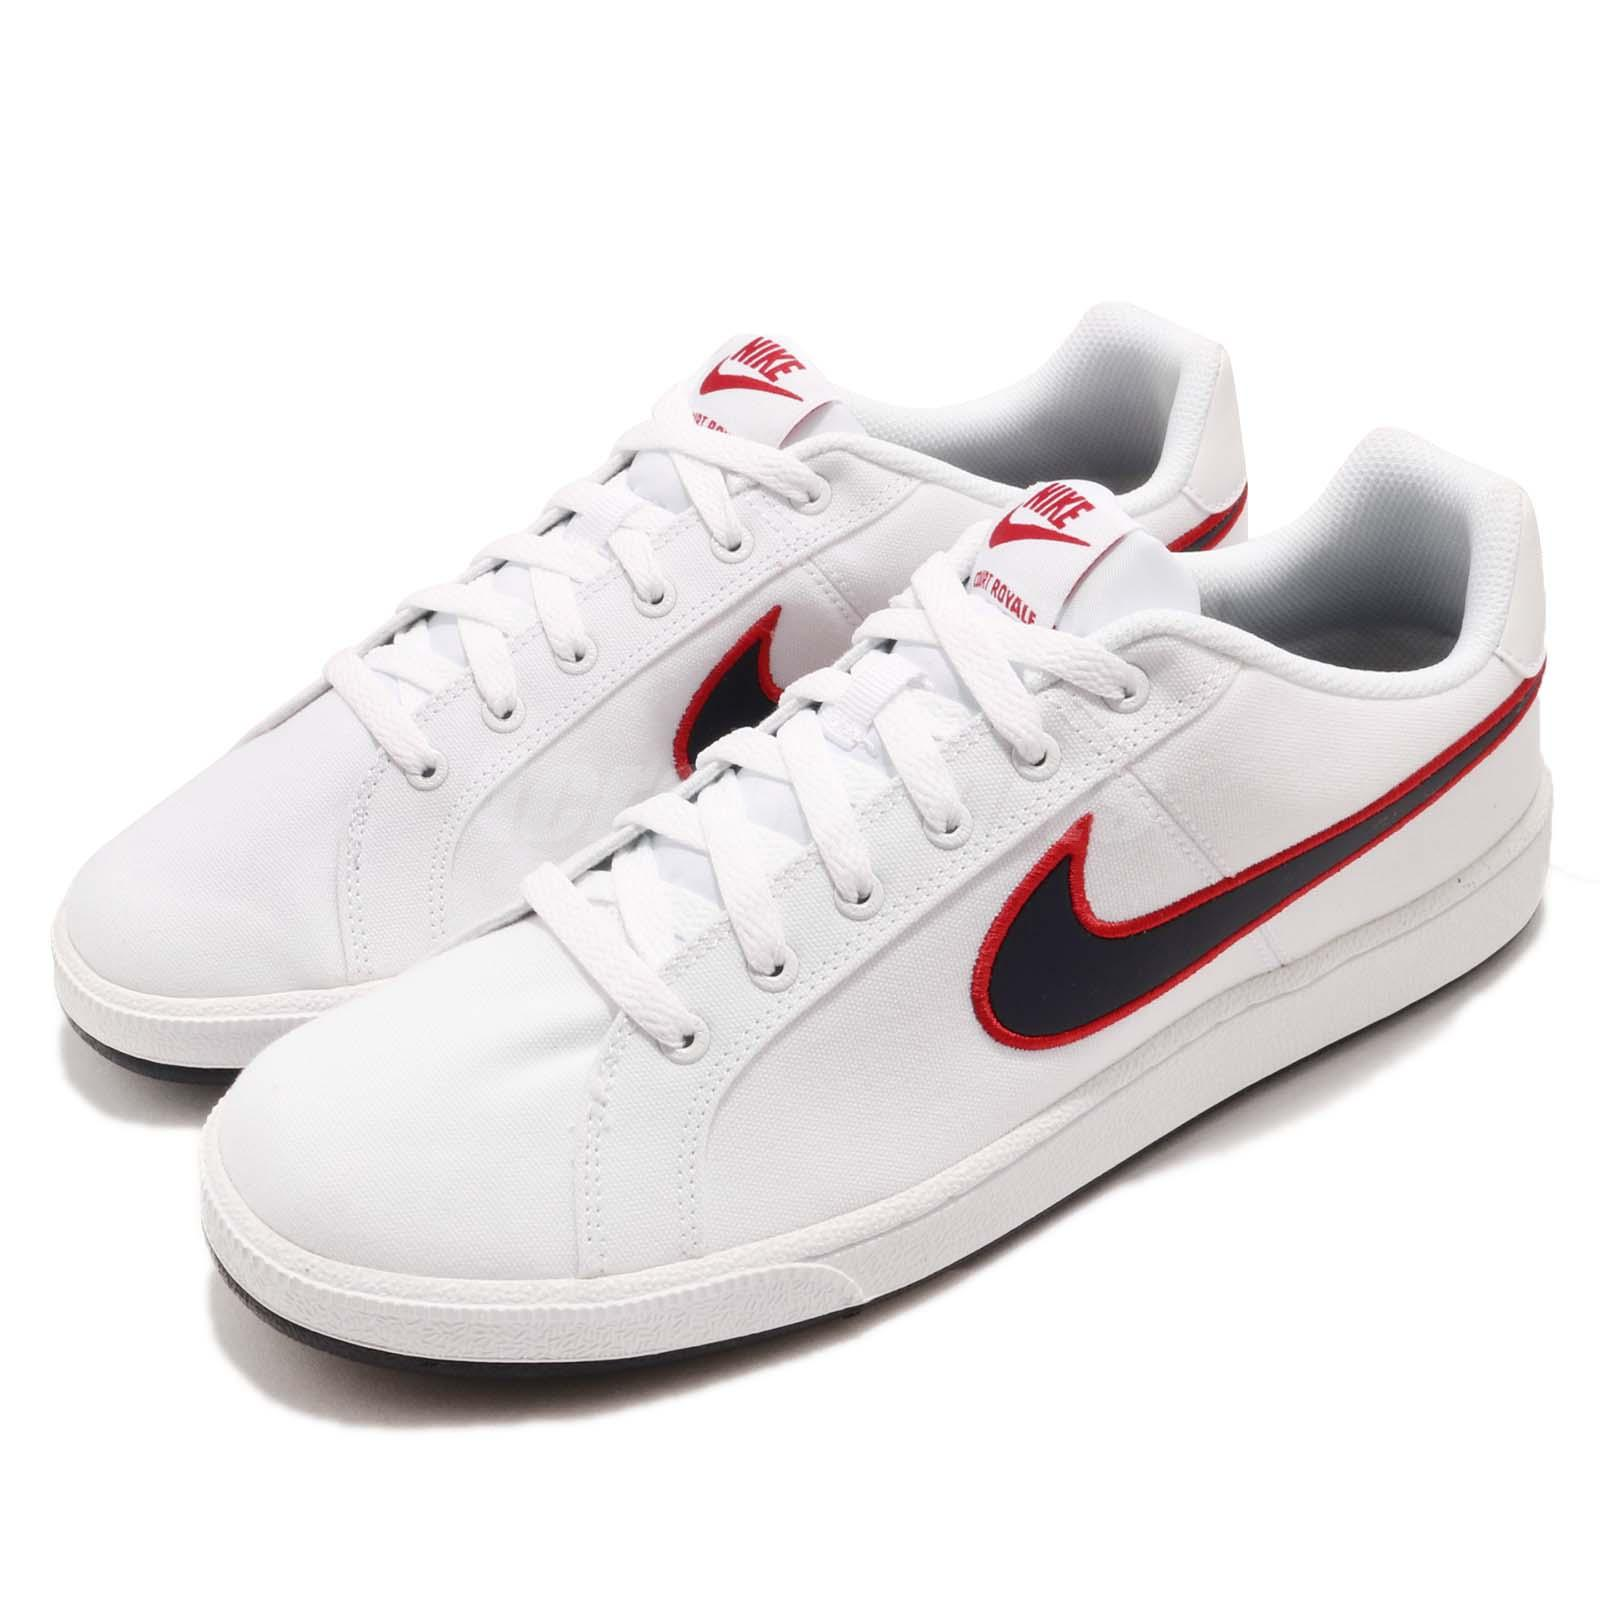 194472d0d455 Details about Nike Court Royale Canvas White Blackened Blue Red Men Casual  Shoes AA2156-101